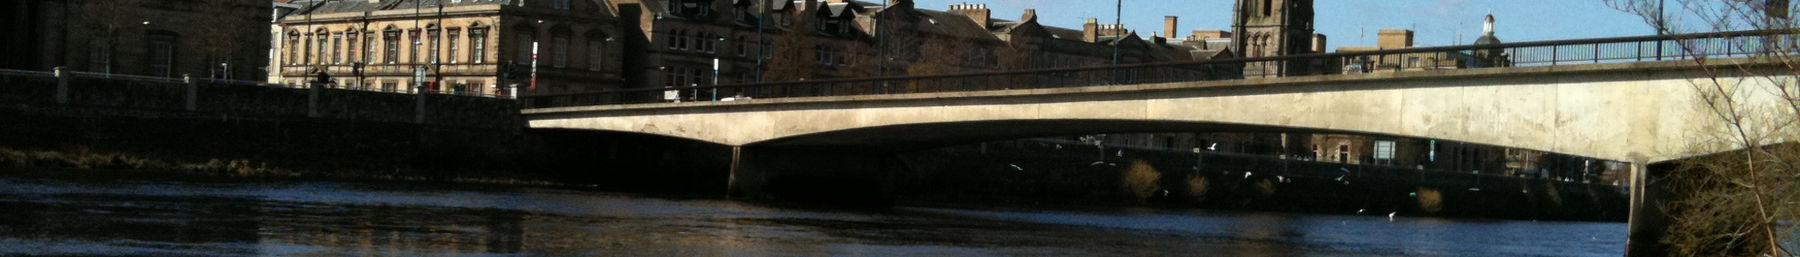 The Queens Bridge with the River Tay flowing below